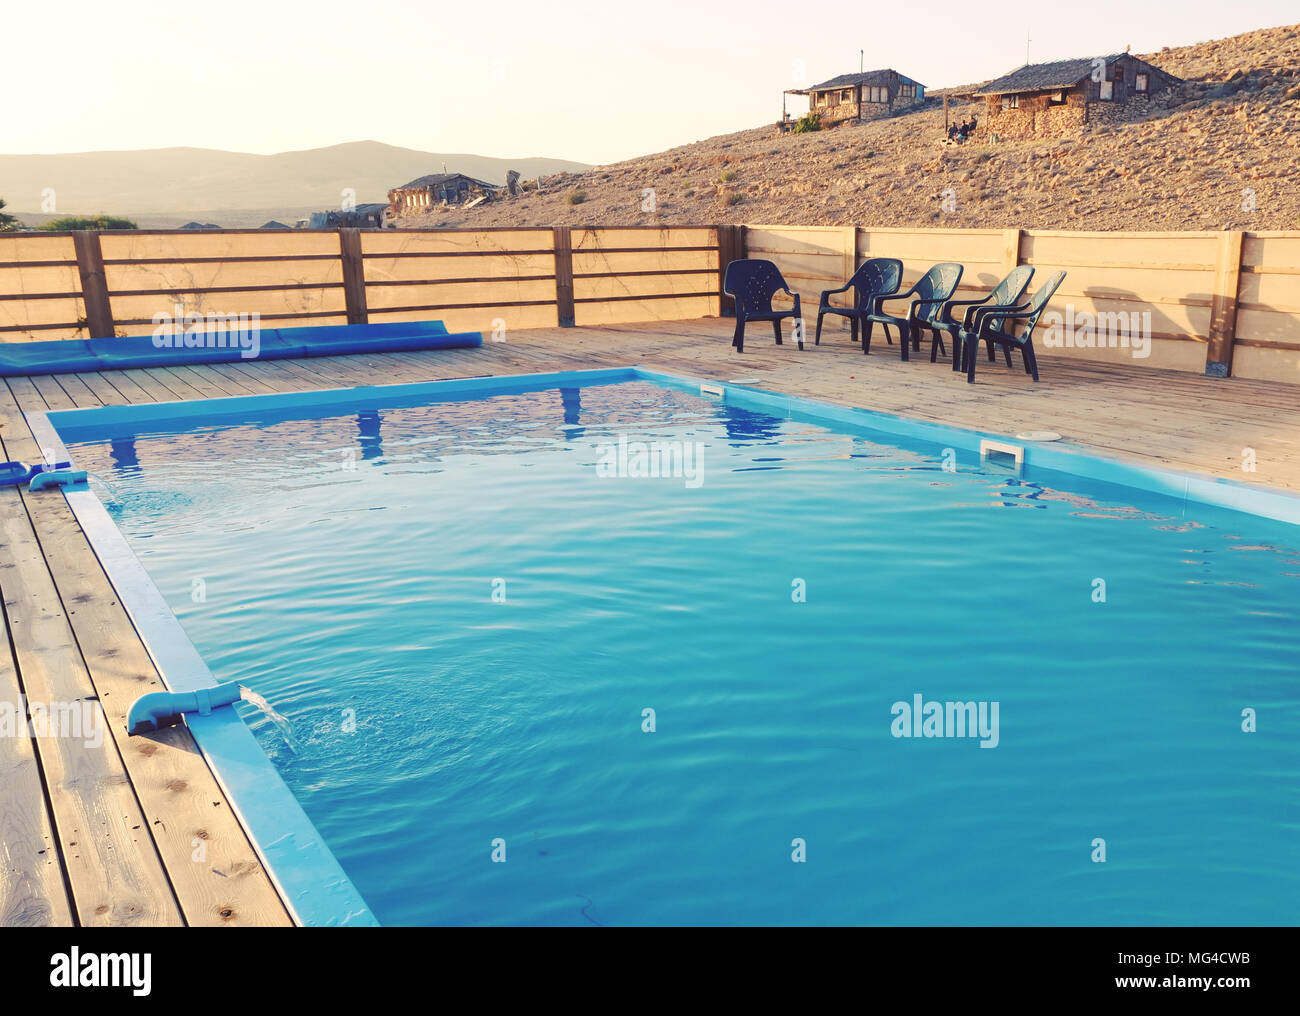 Inviting blue swimming pool in a wooden deck with plastic ...